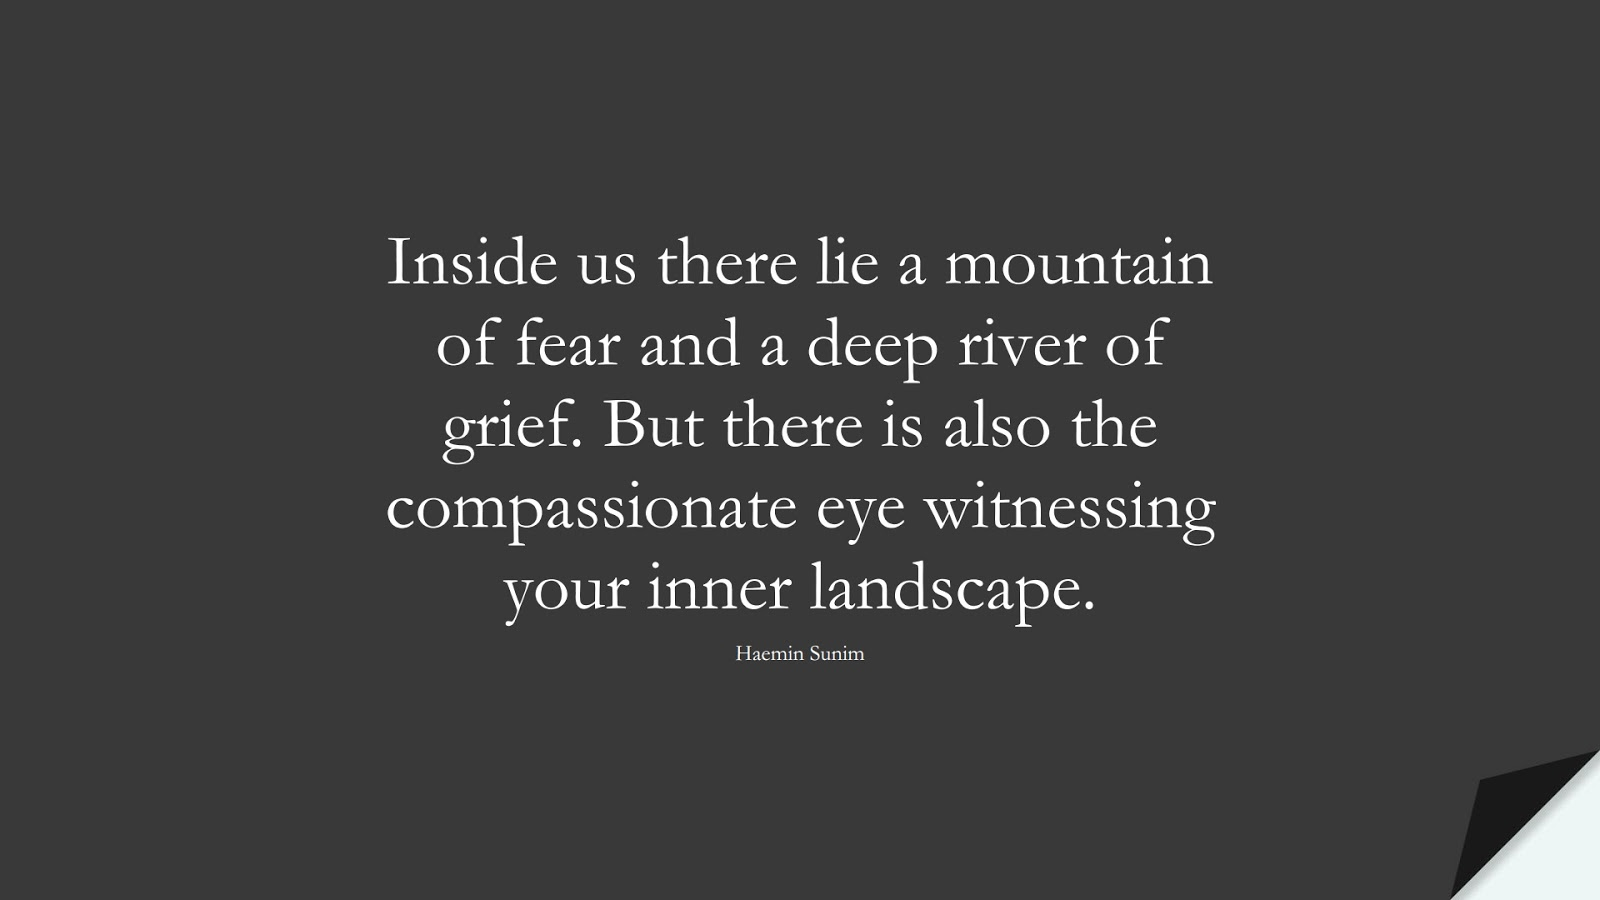 Inside us there lie a mountain of fear and a deep river of grief. But there is also the compassionate eye witnessing your inner landscape. (Haemin Sunim);  #FearQuotes